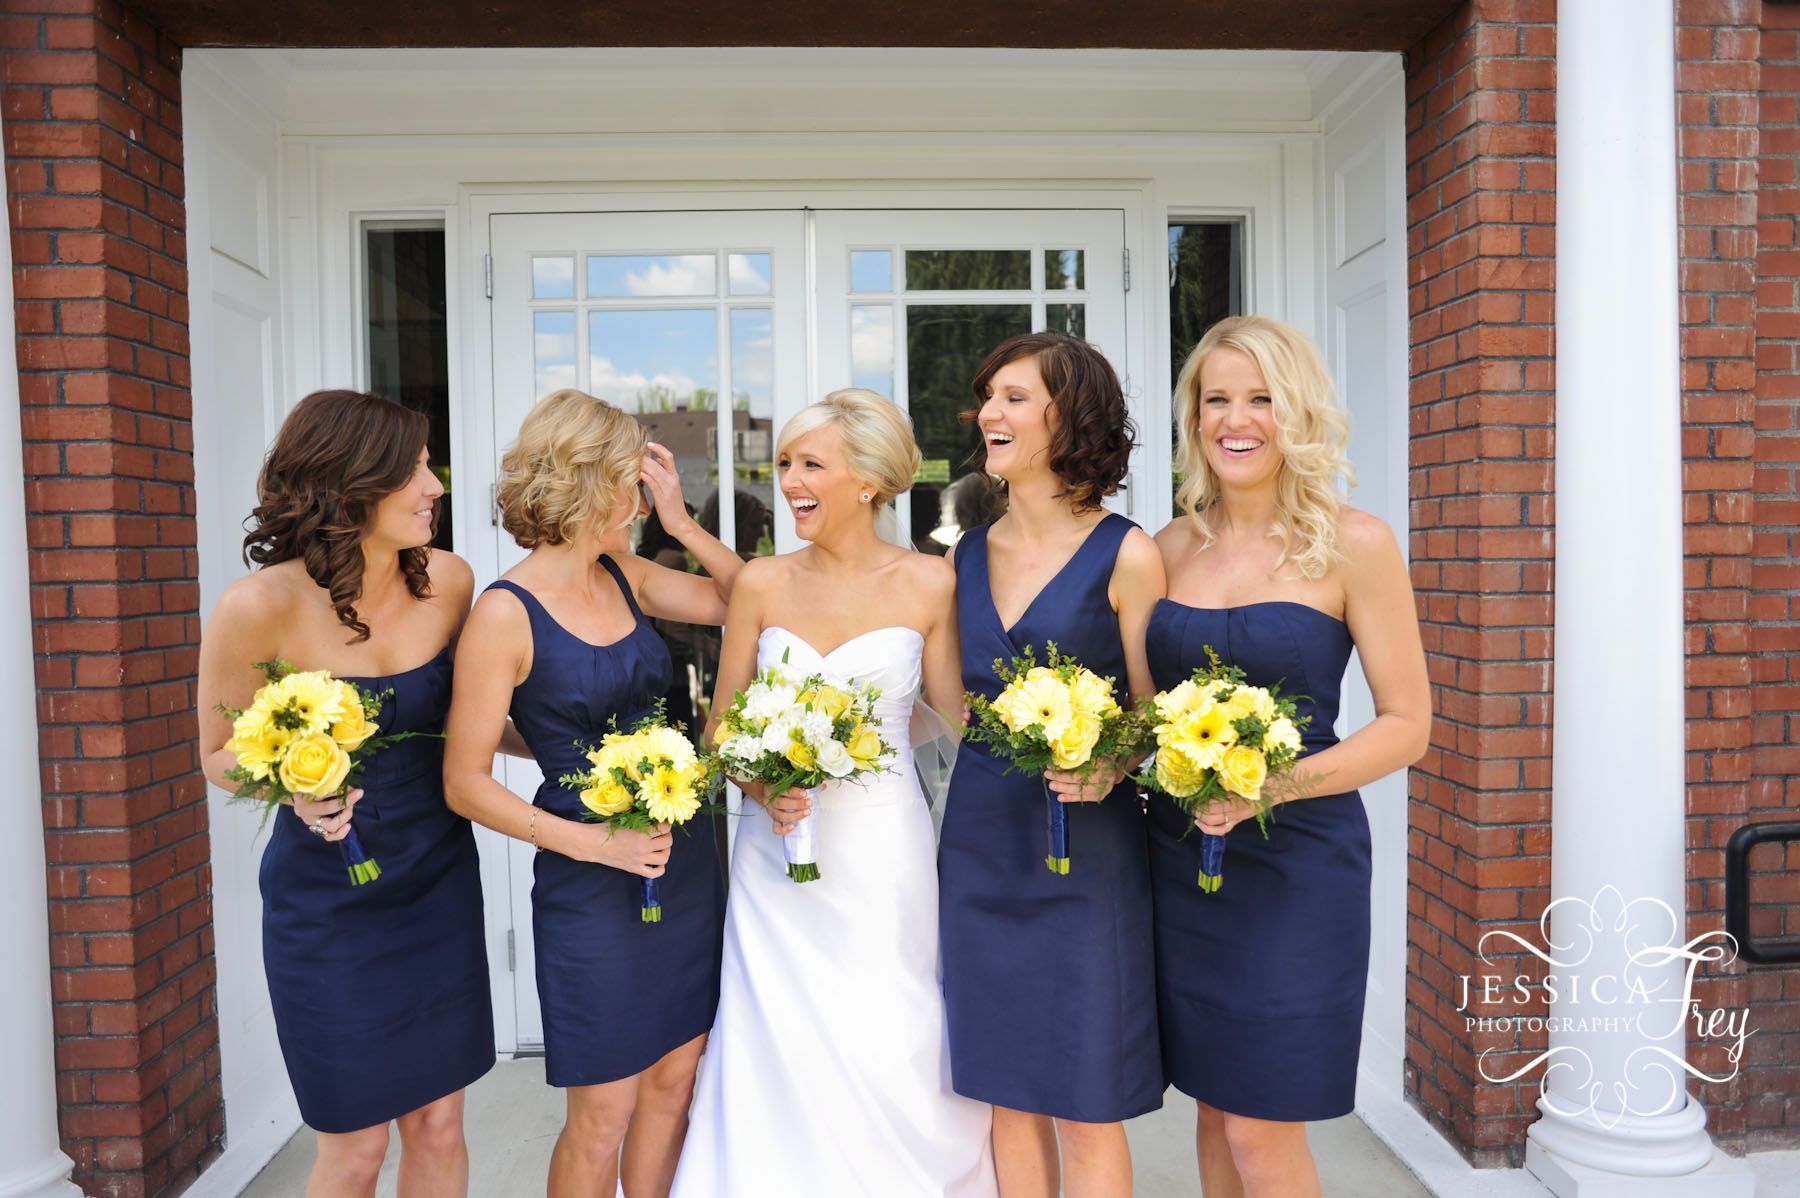 Navy and yellow wedding i love how all the bridesmaids are in navy and yellow wedding i love how all the bridesmaids are in different style dresses ombrellifo Image collections